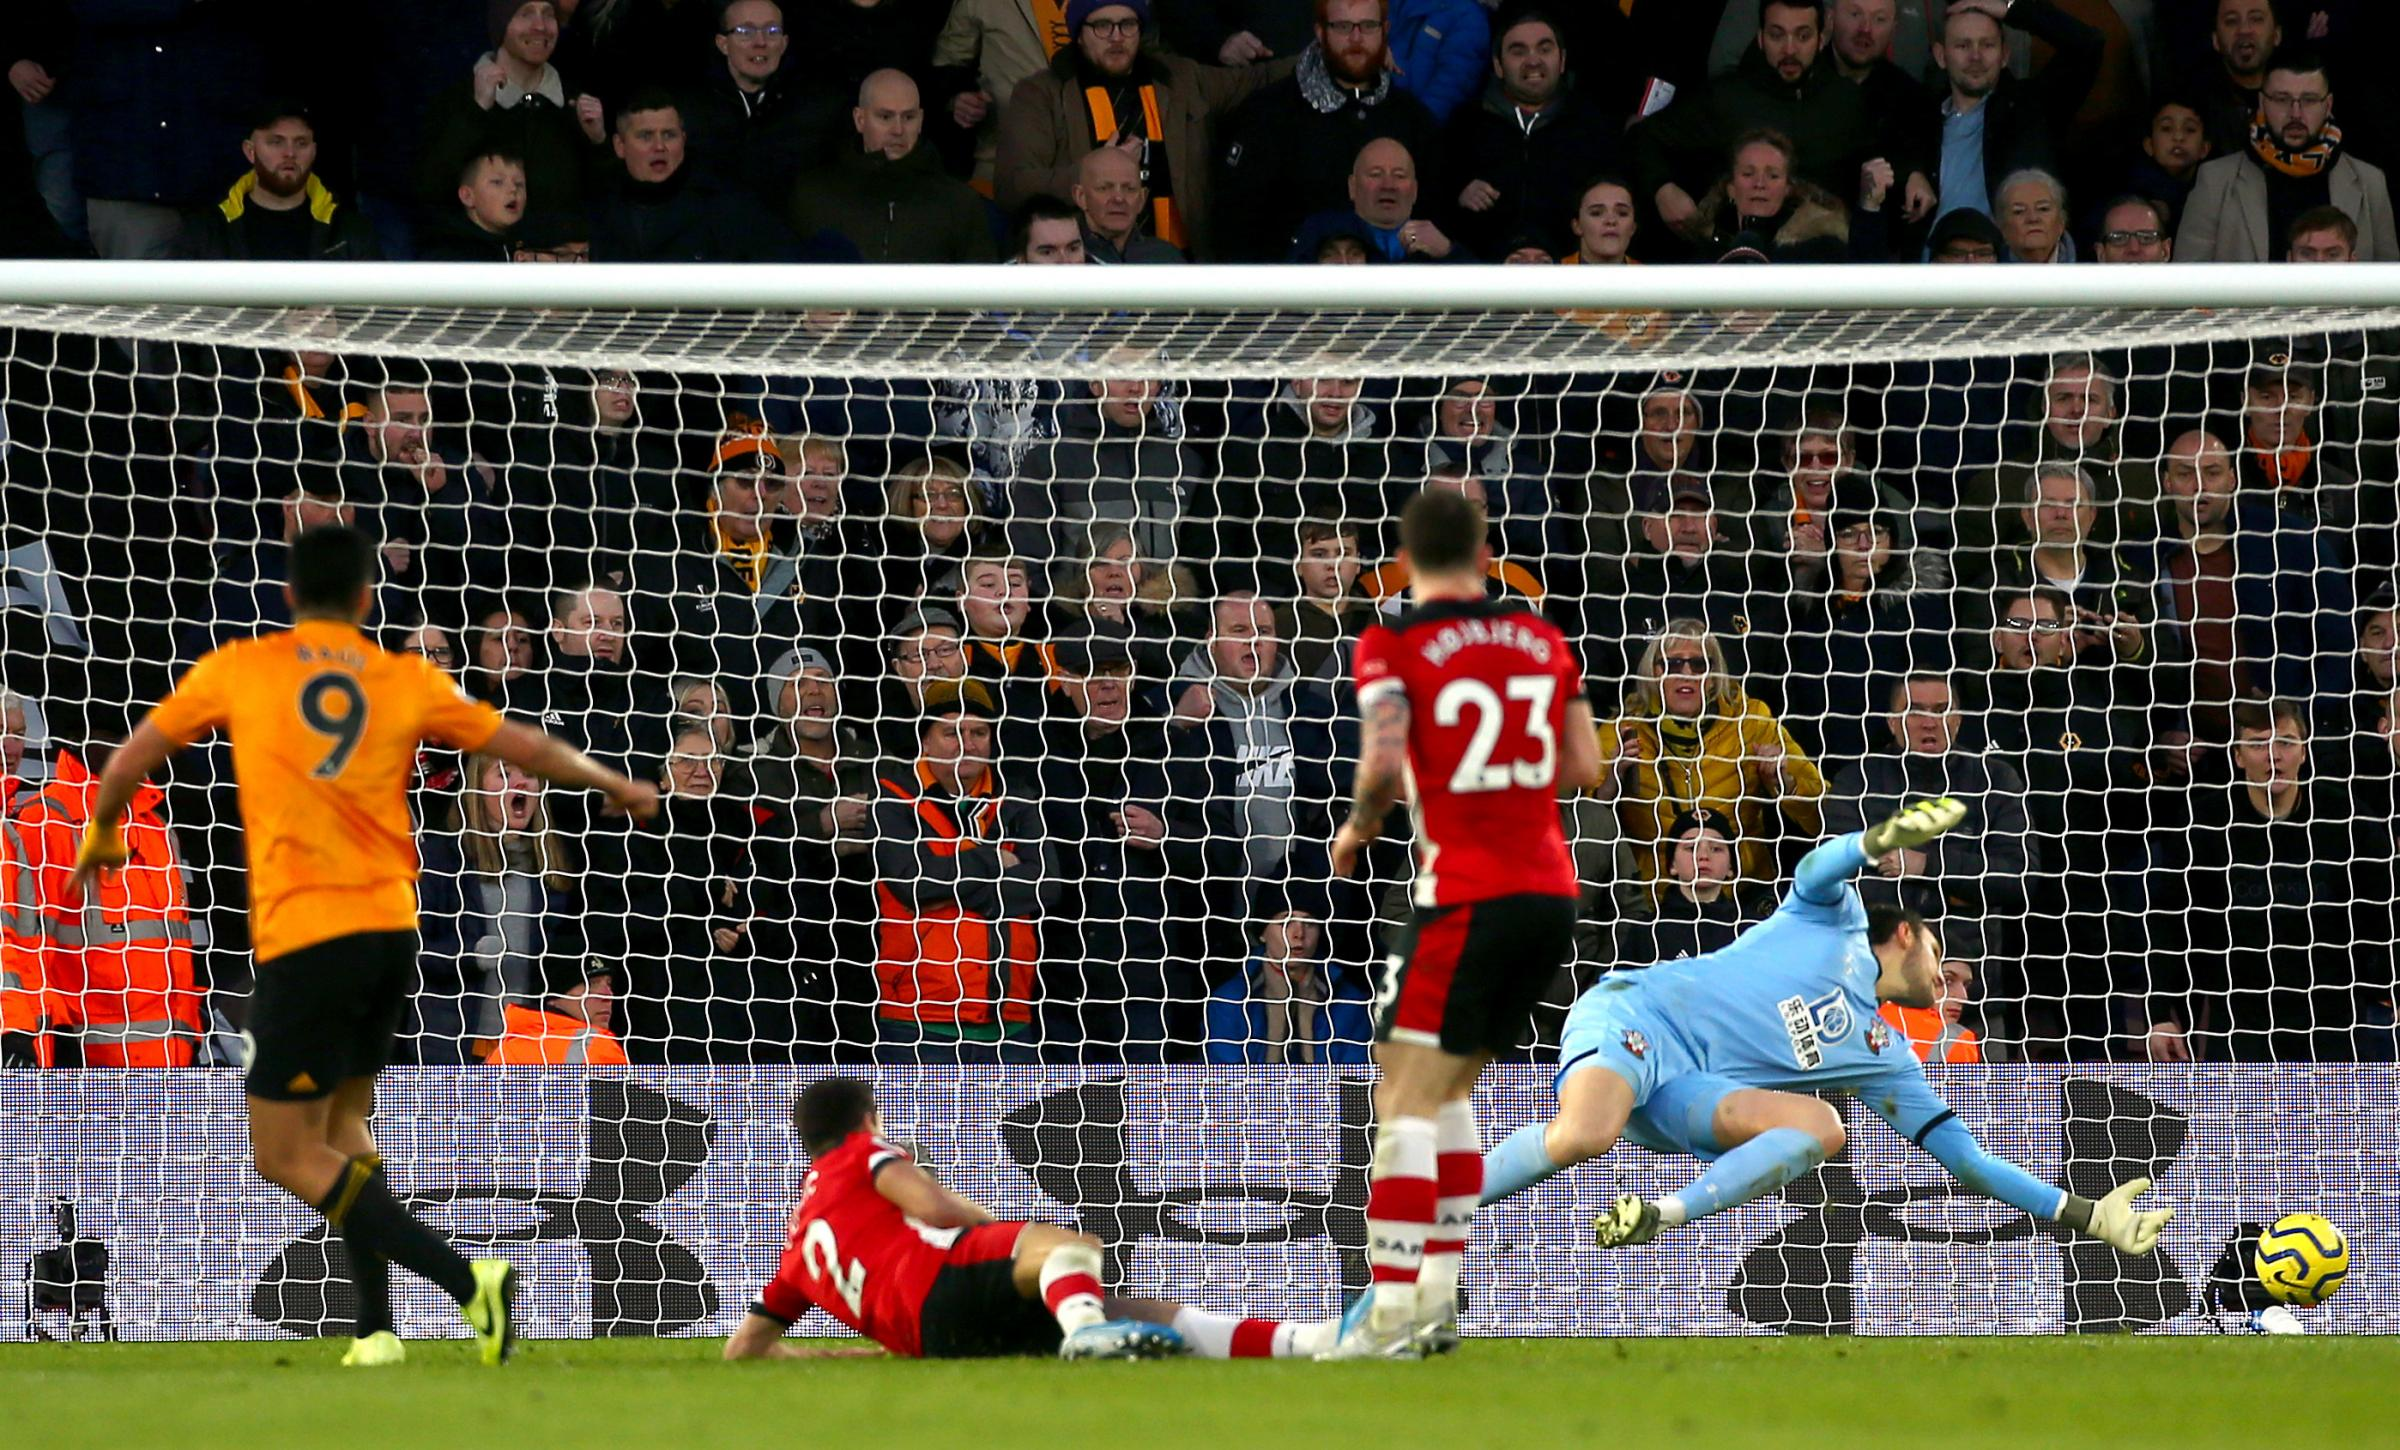 Southampton 2 Wolves 3: Saints are stunned after leading 2-0